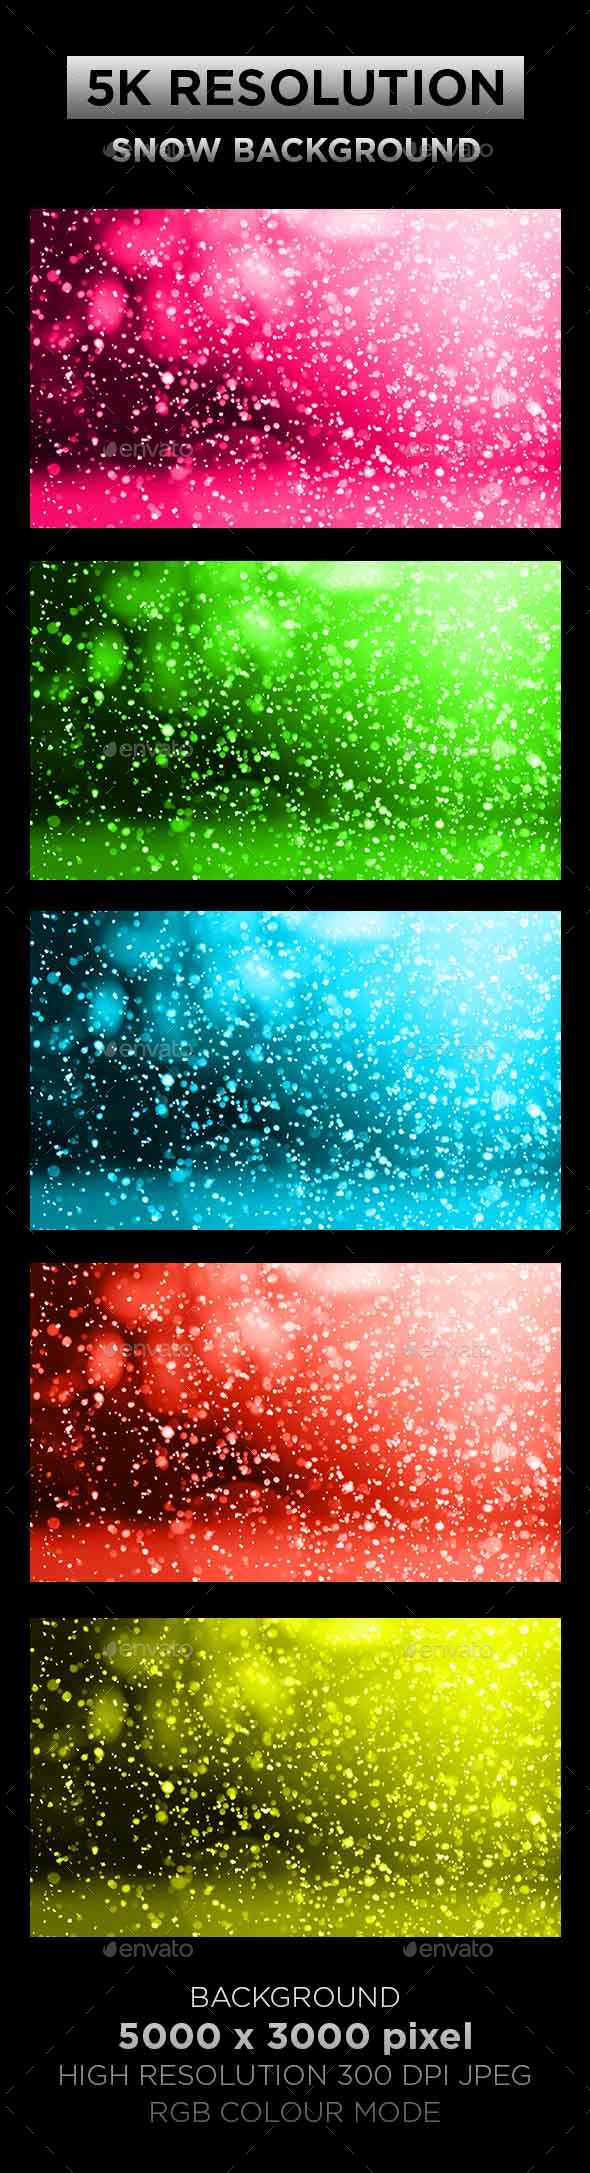 Snow Texture Background 001 - Backgrounds Graphics